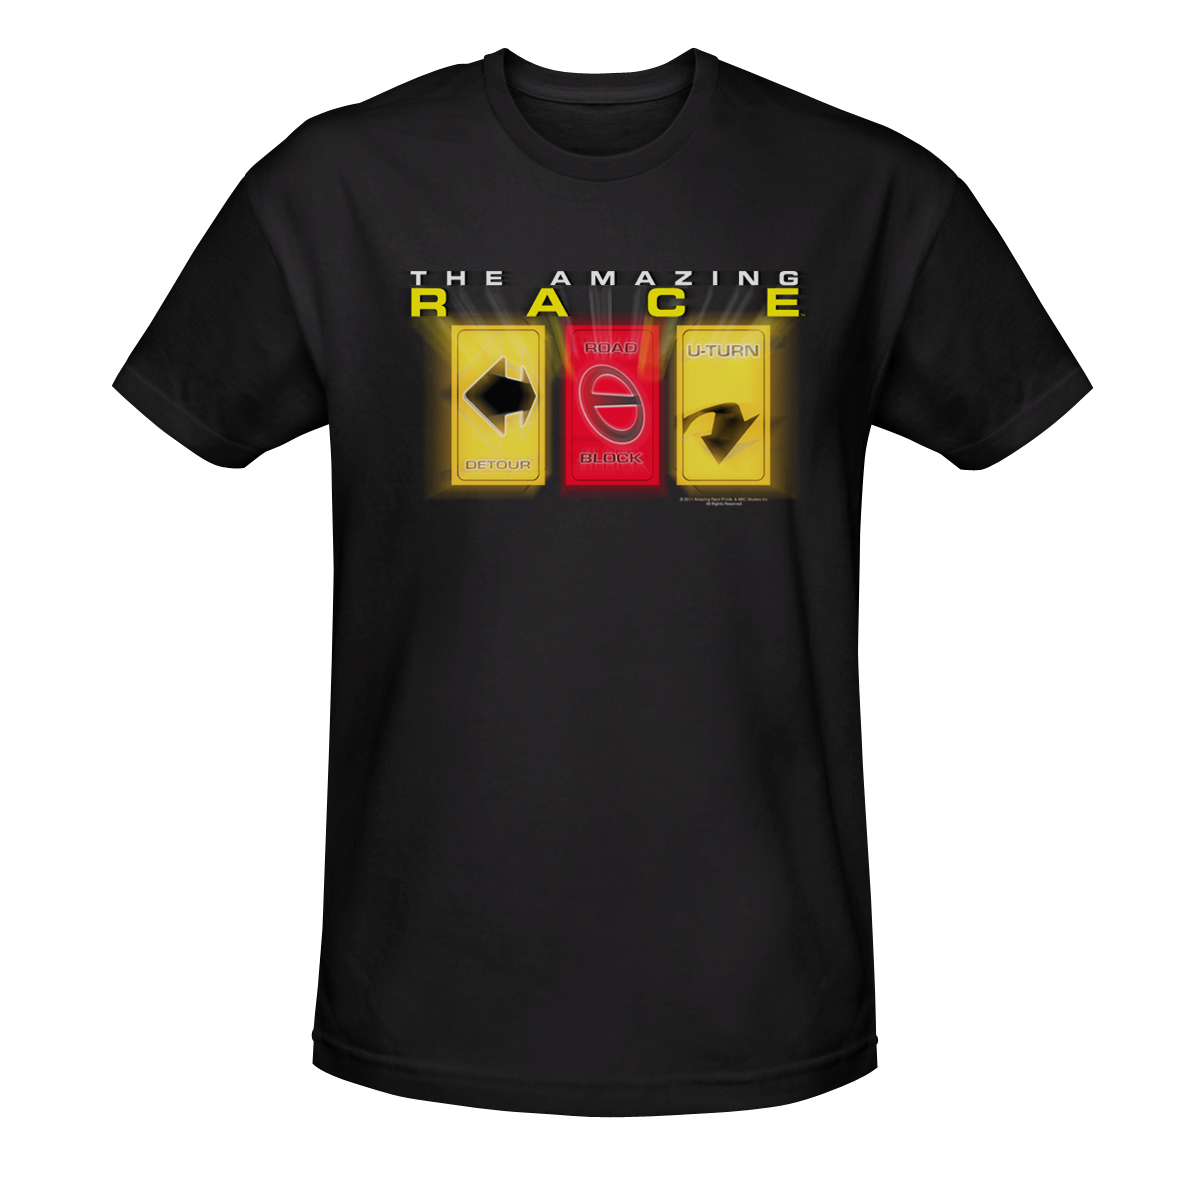 The Amazing Race Road Sign T-Shirt